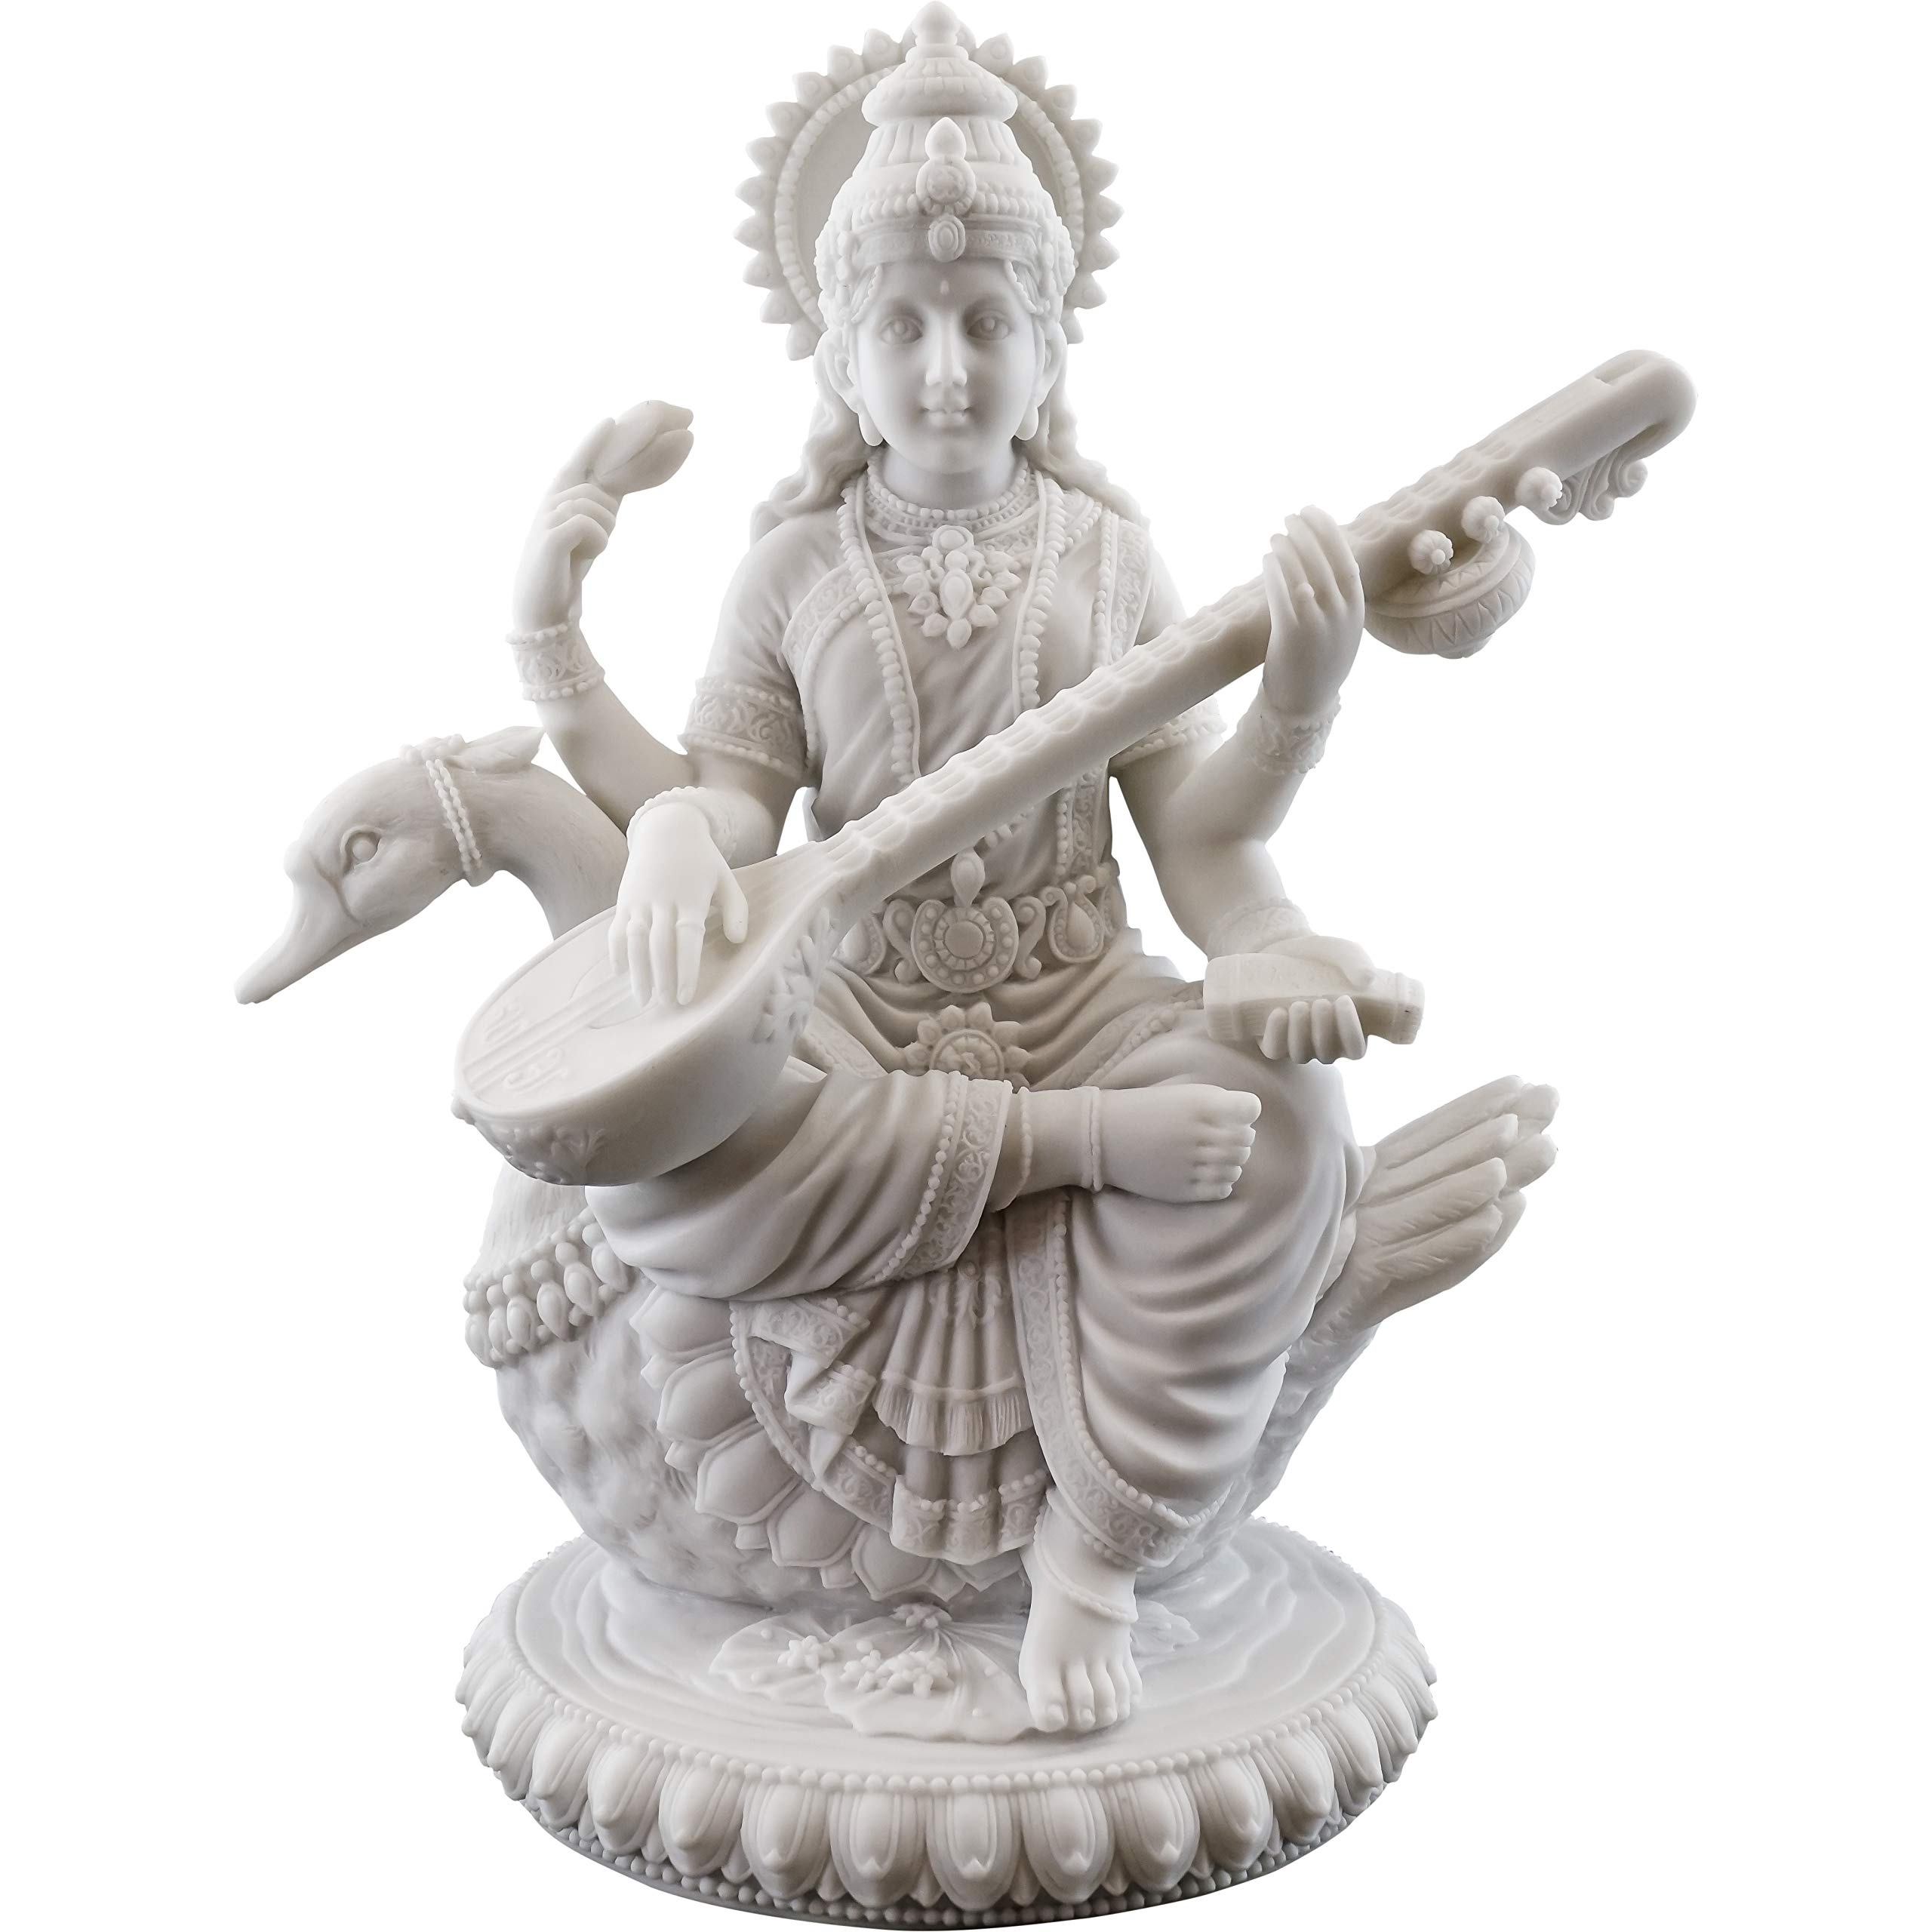 Top Collection 8'' H 7'' W Saraswati on Swan Statue in White Marble Finish - Hindu Goddess of Knowledge Sculpture by Top Collection